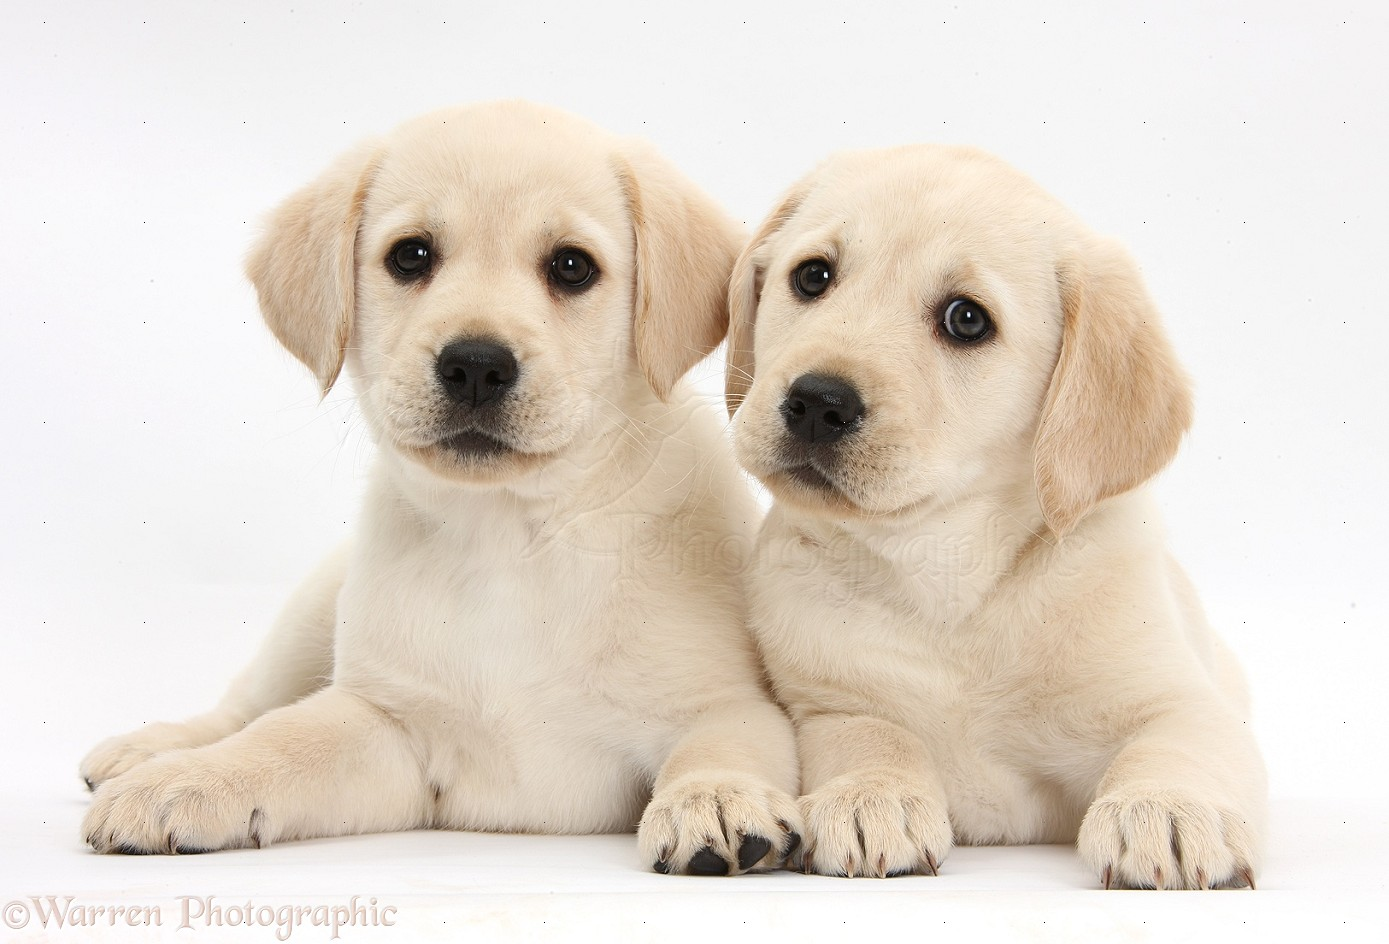 Yellow Labrador Retriever puppies 1389x944